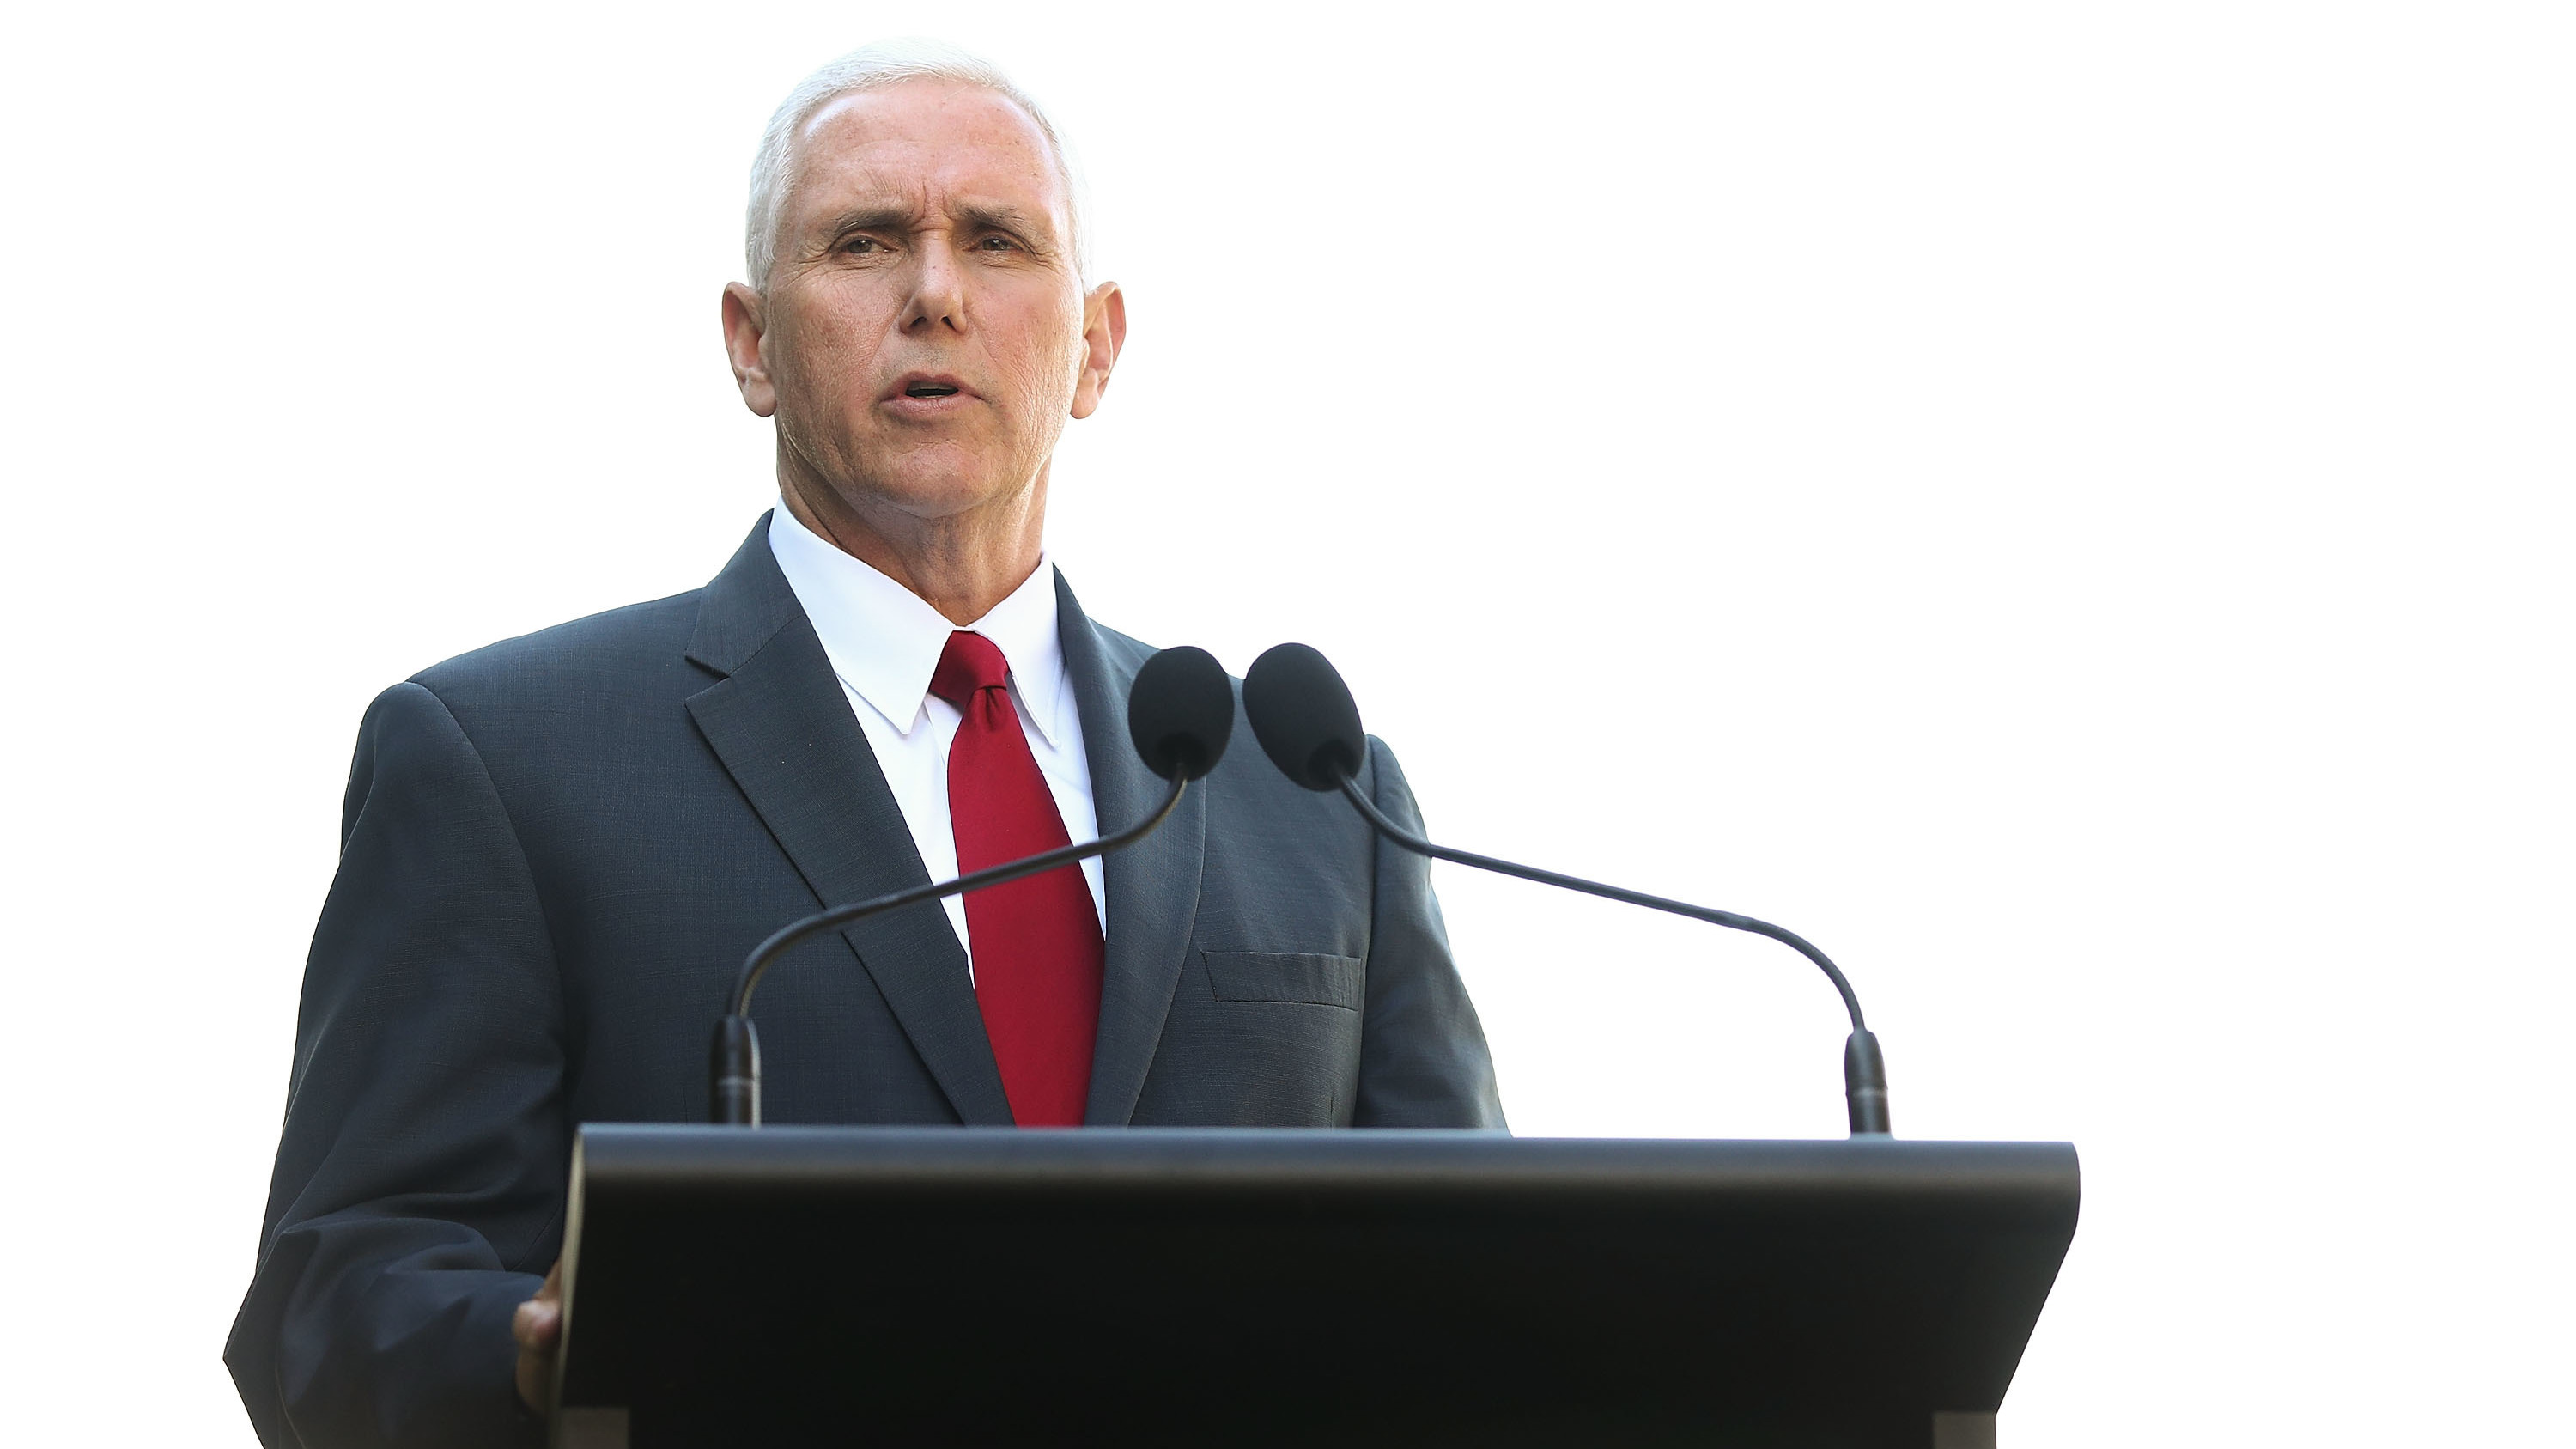 Pence hires BigLaw lawyer in Russian Federation  probe with personal Comey connection